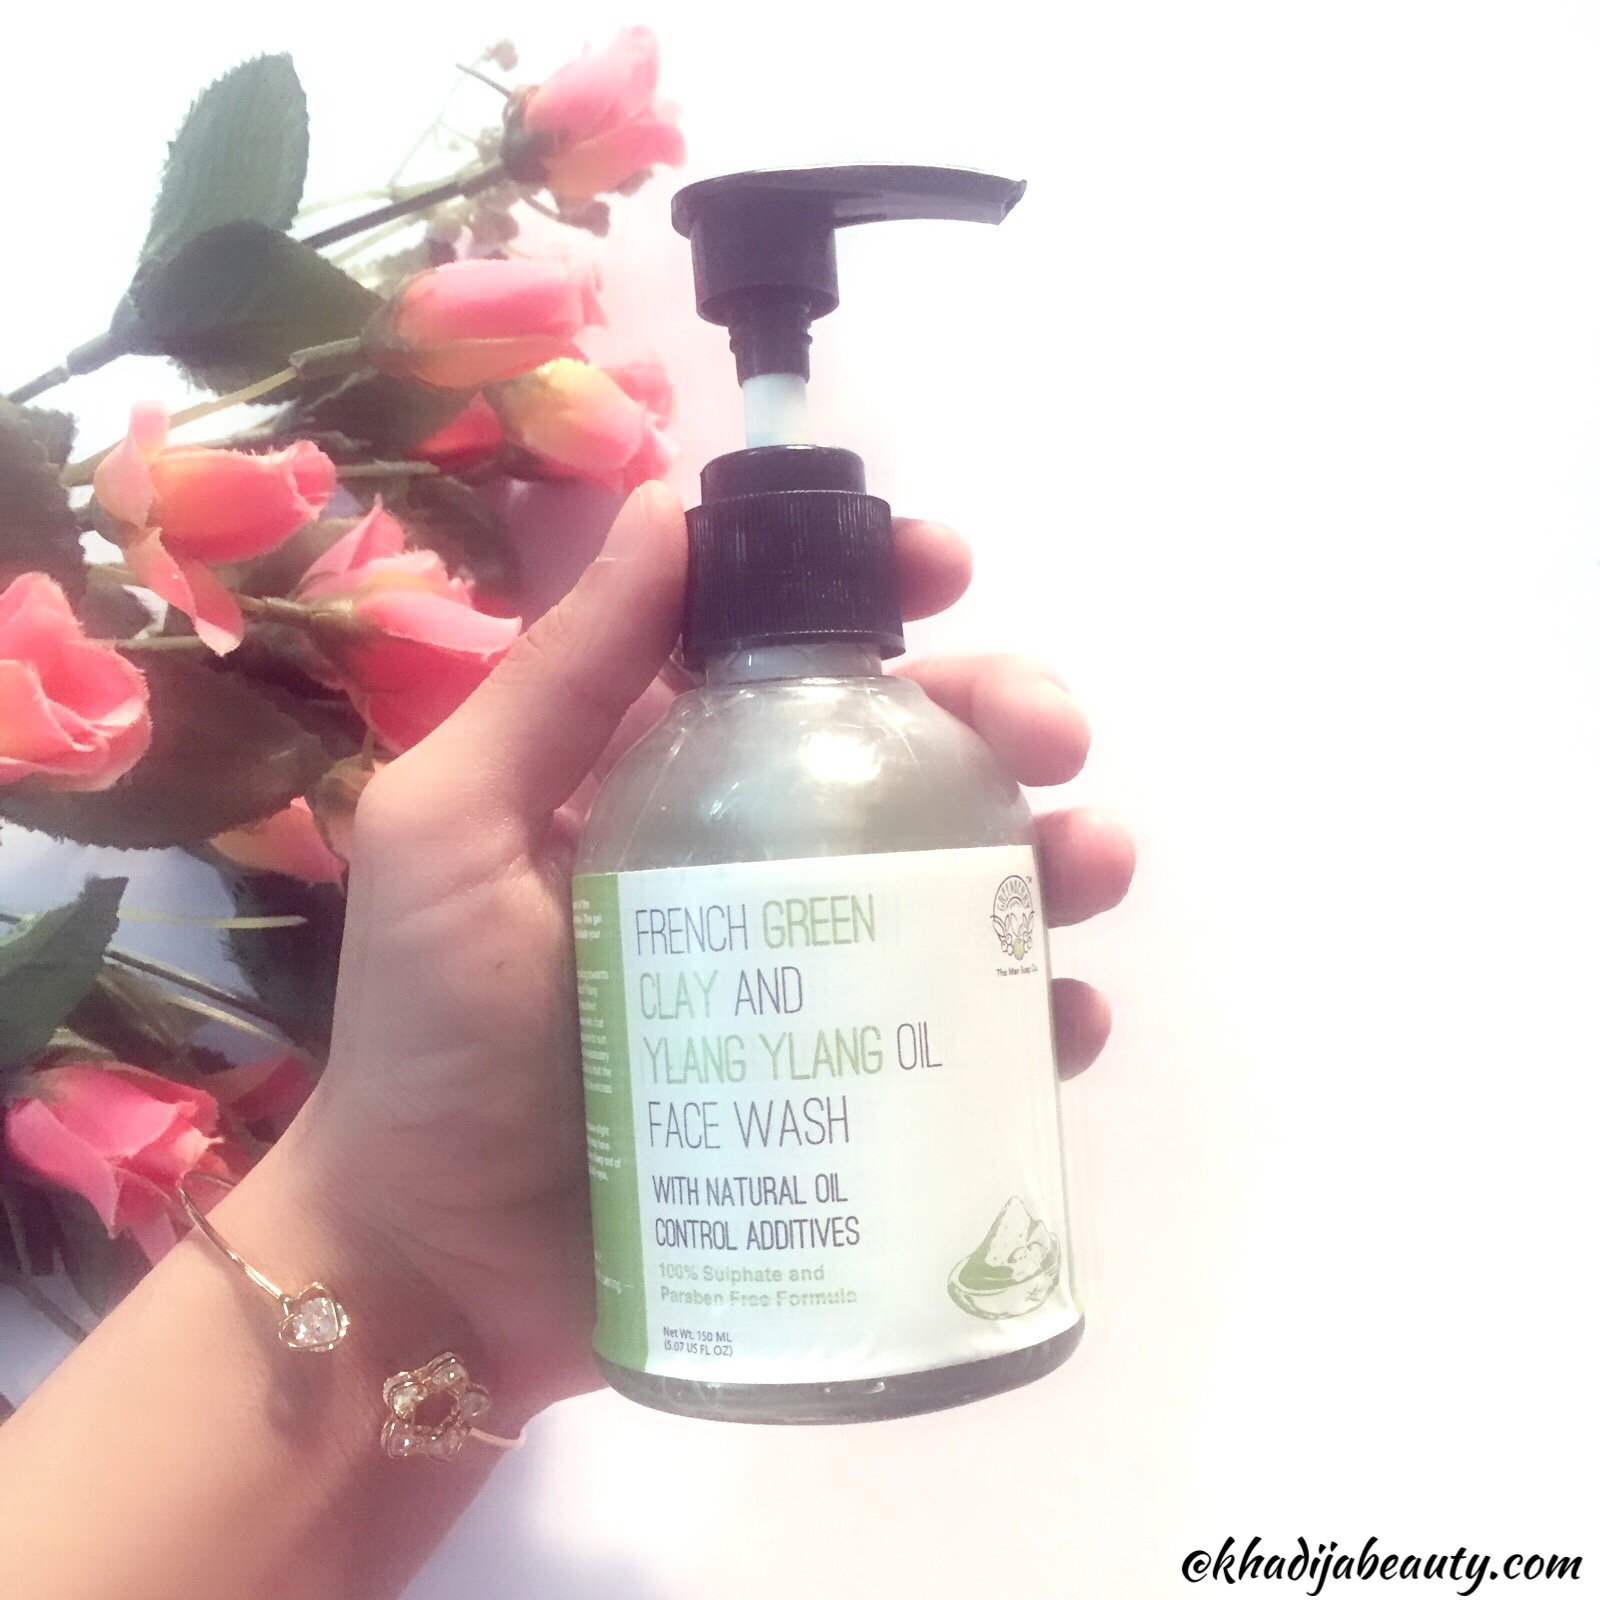 Greenberry Organics french green clay and ylang ylang oil face wash review